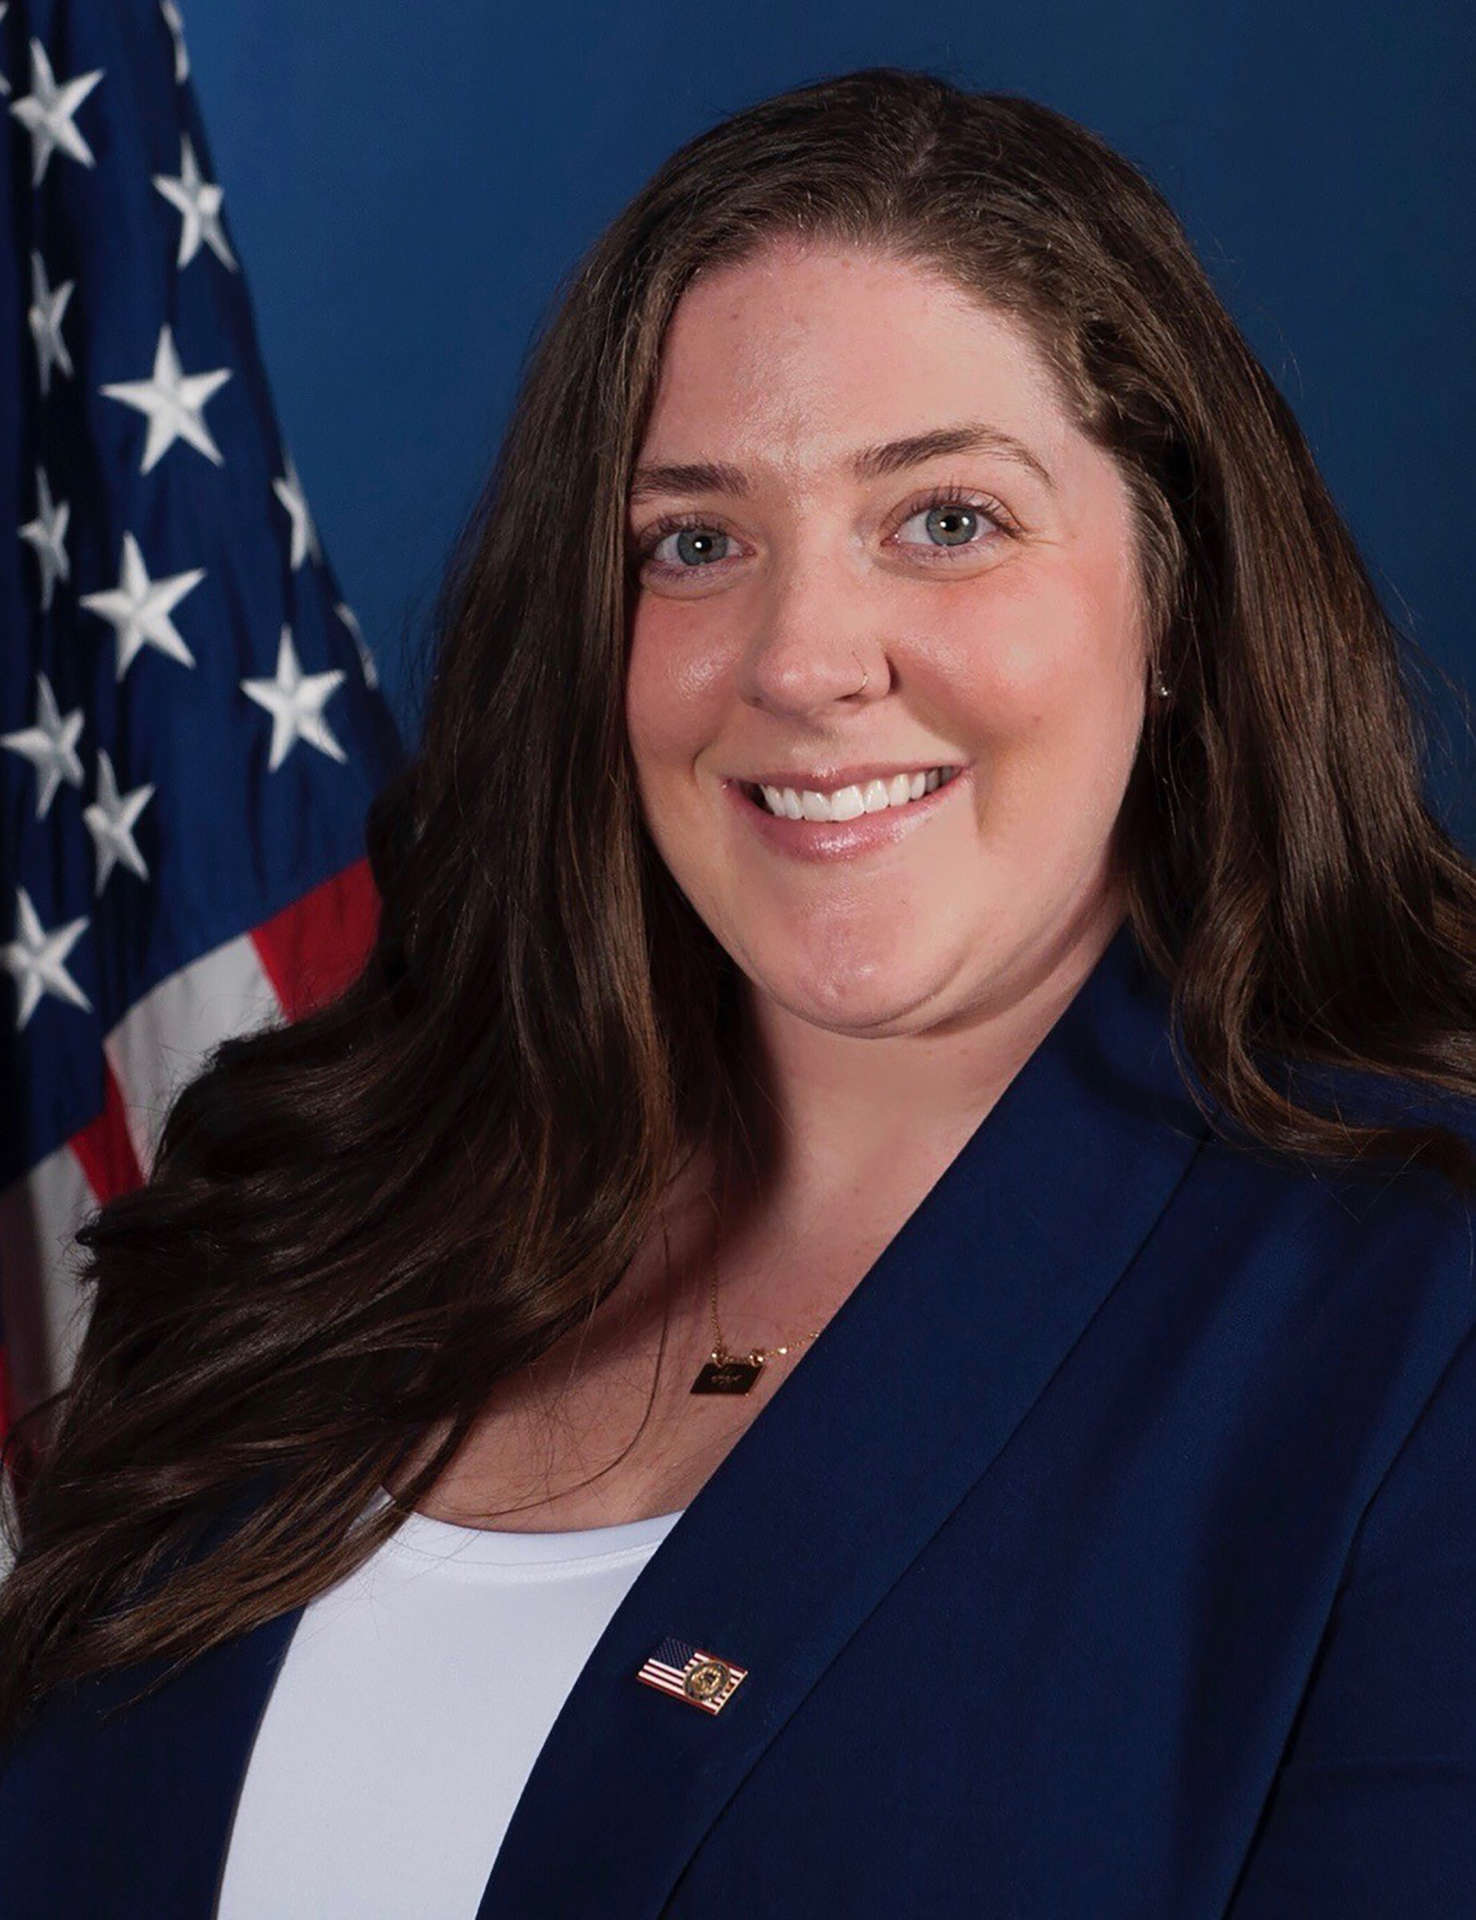 Amanda Hils, public information officer and recruiter for the ATF Baltimore Field Division